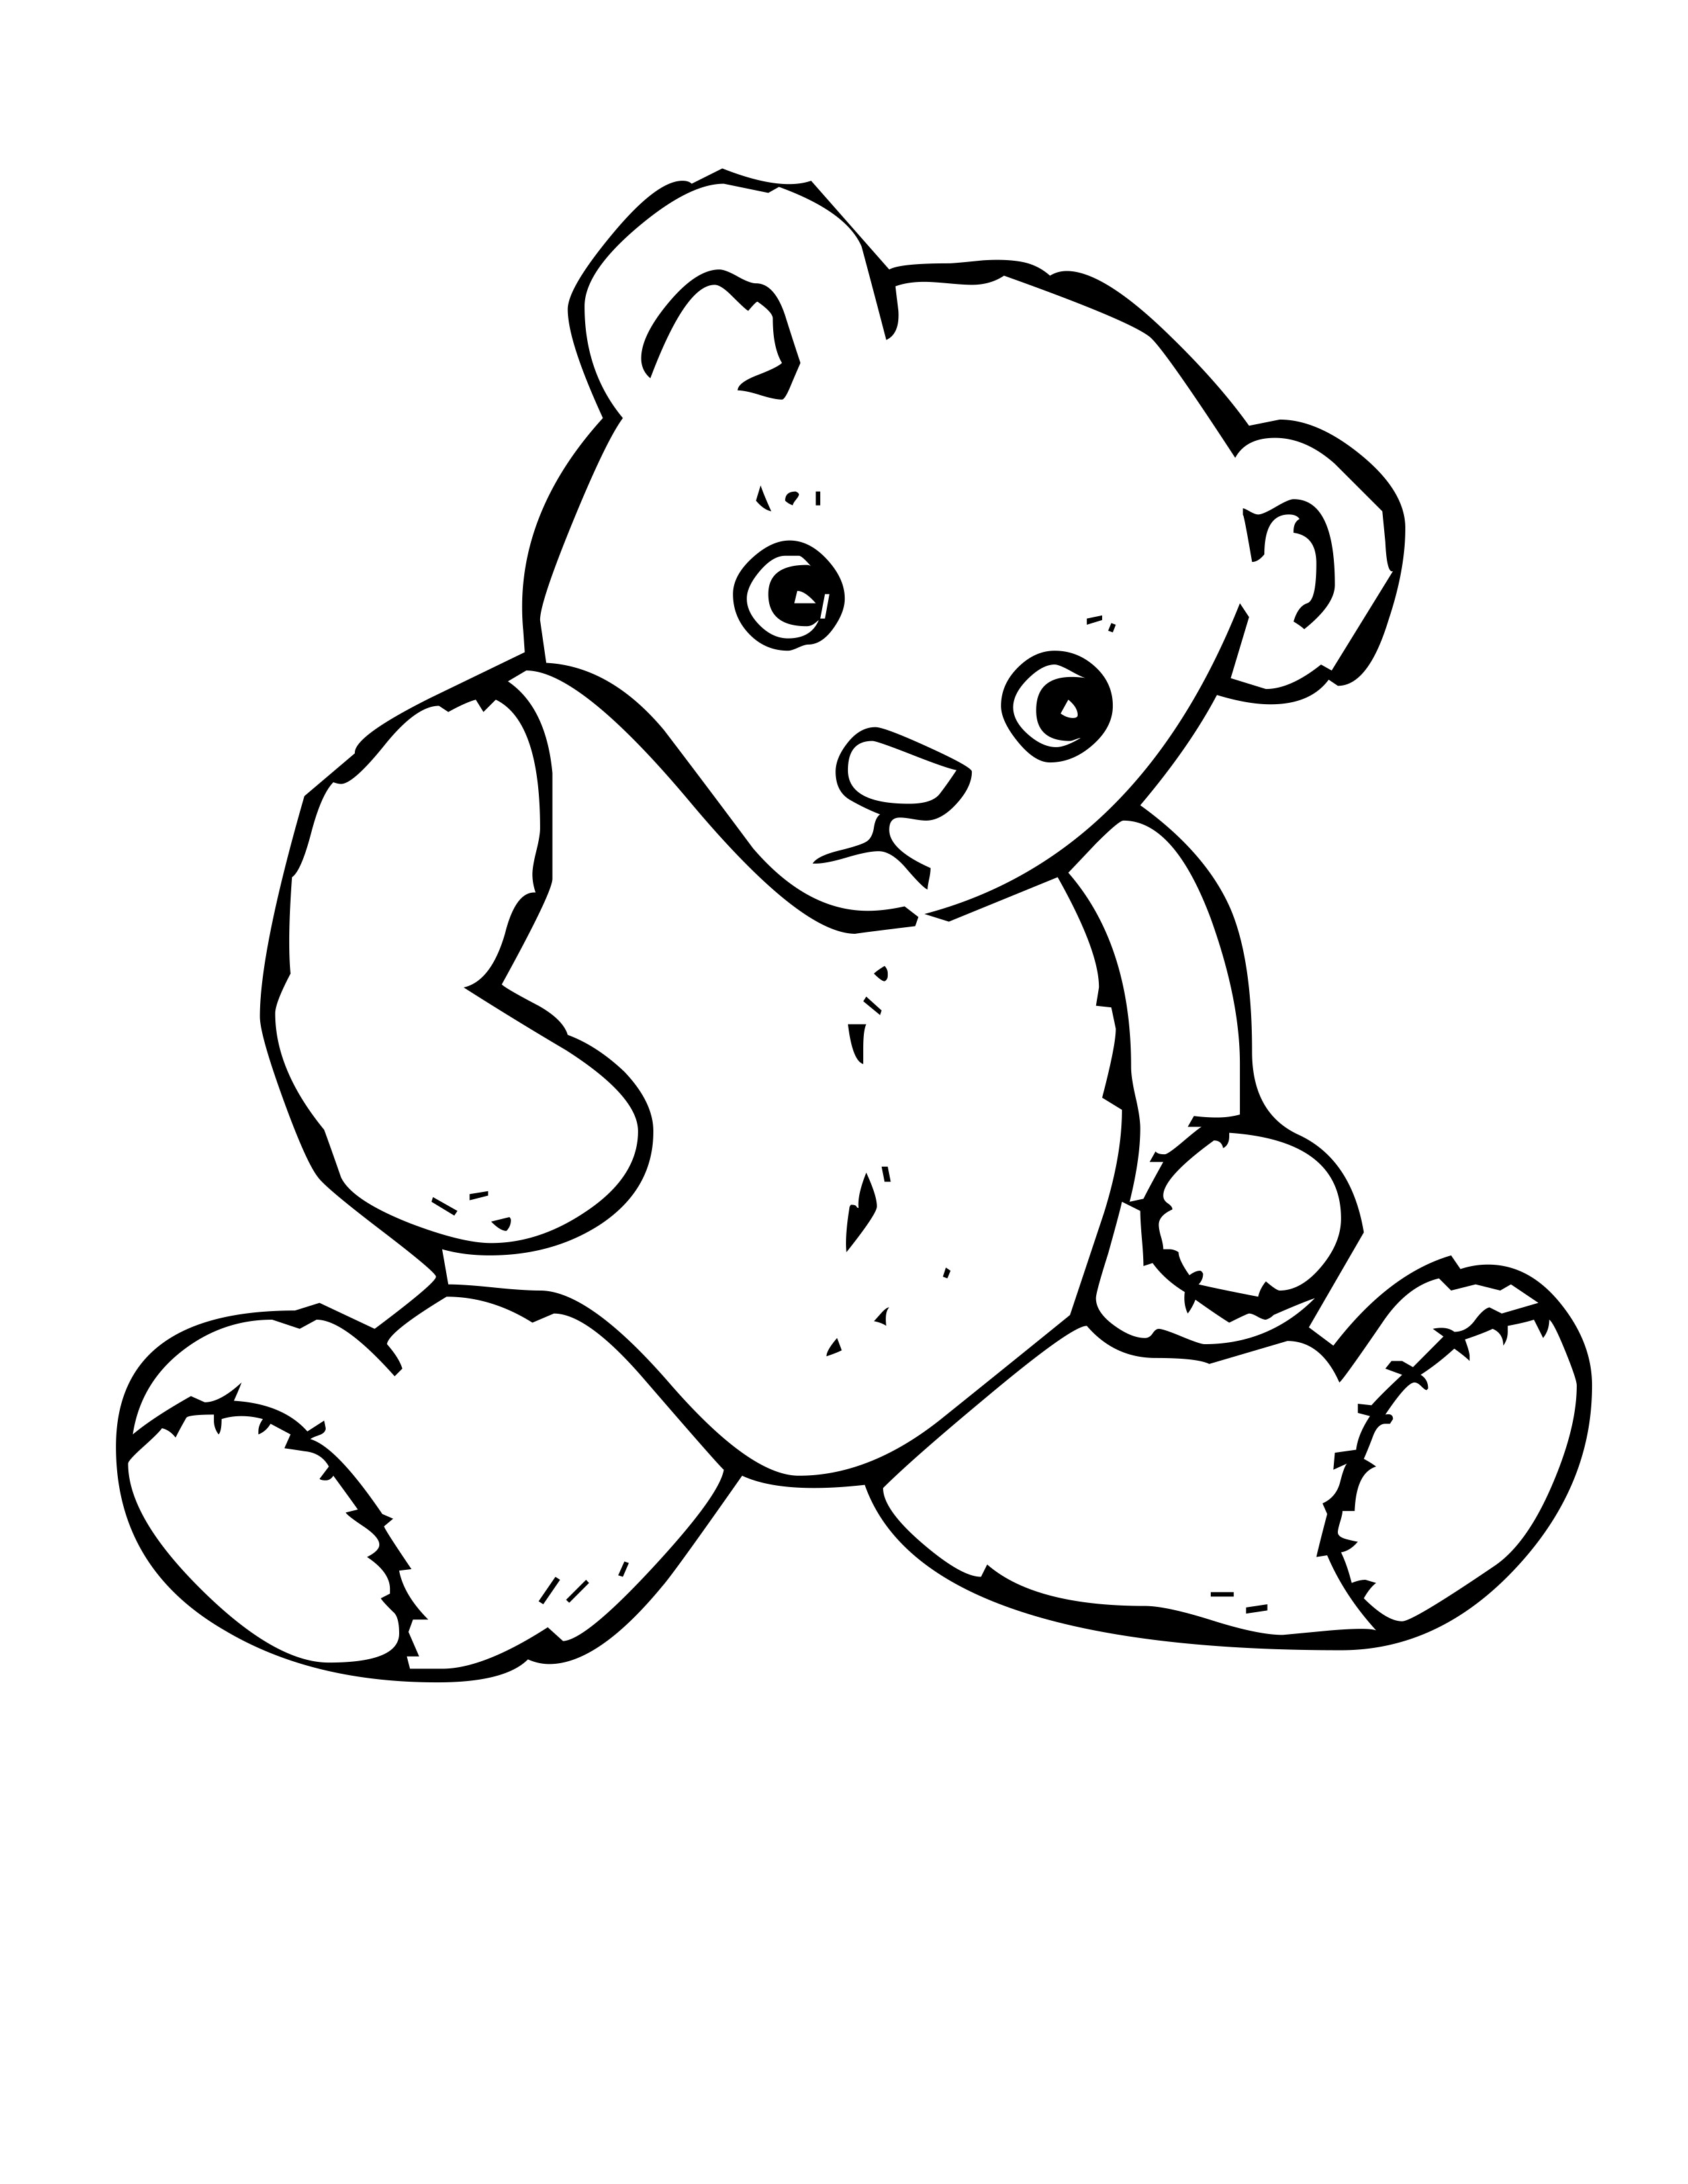 Adult Beauty Cute Teddy Bear Coloring Pages Images top free printable teddy bear coloring pages for kids images